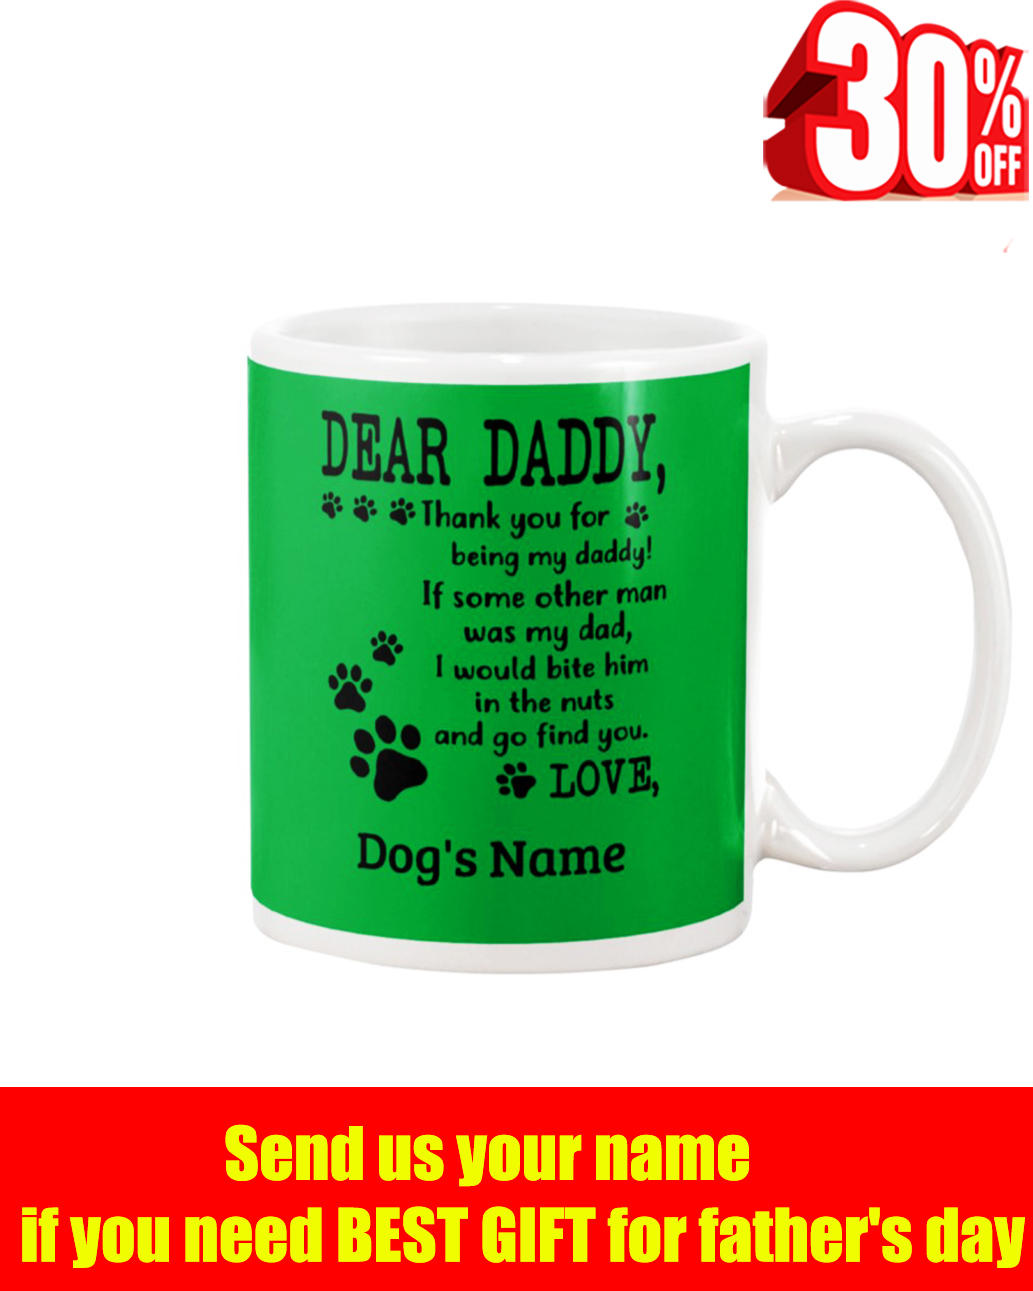 Dear Daddy thank you for being my daddy dog's name kely mug